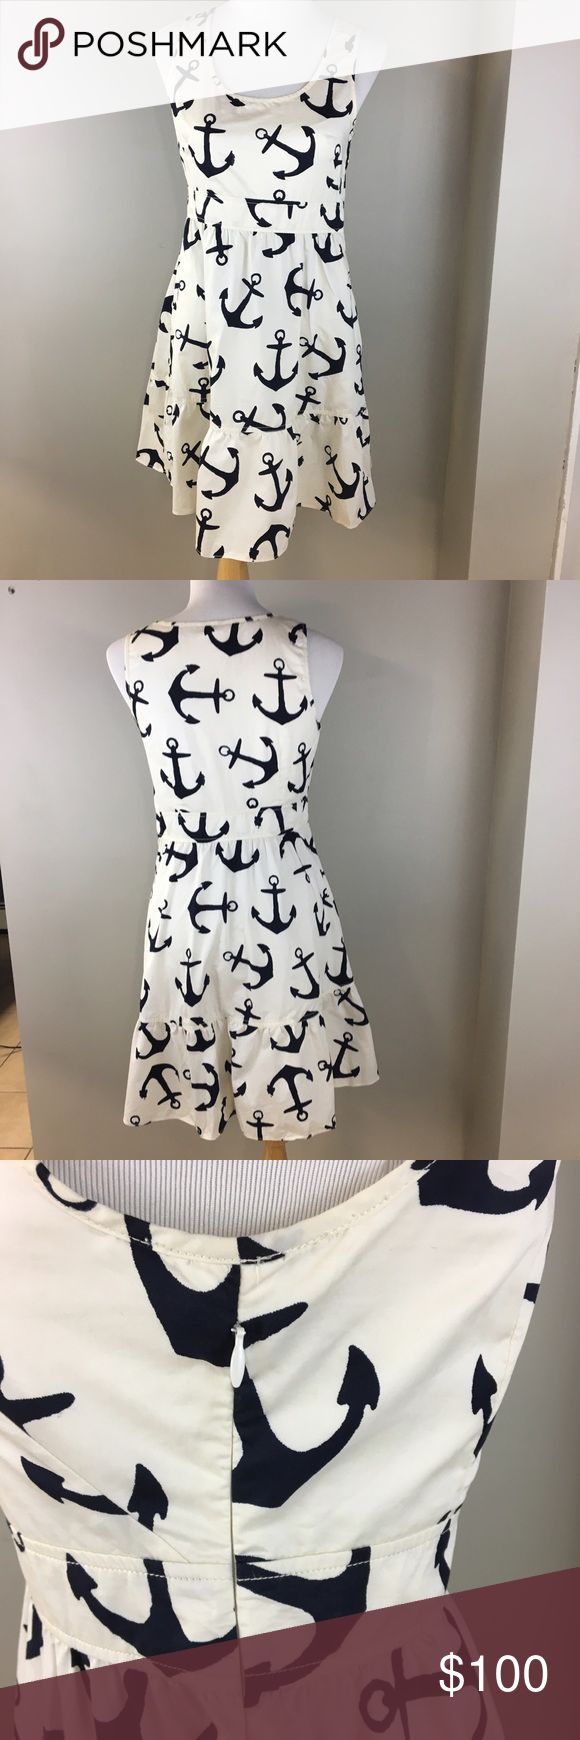 J. crew ANCHOR PRINT dress sleeveless white navy 2 Unique print! Gorgeous J. Crew sleeveless dress. Ruffled peplum bottom. 100% cotton. White with navy ANCHOR PRINT! Perfect for summer parties. Size 2. Small tear above the side zipper. J. Crew Dresses